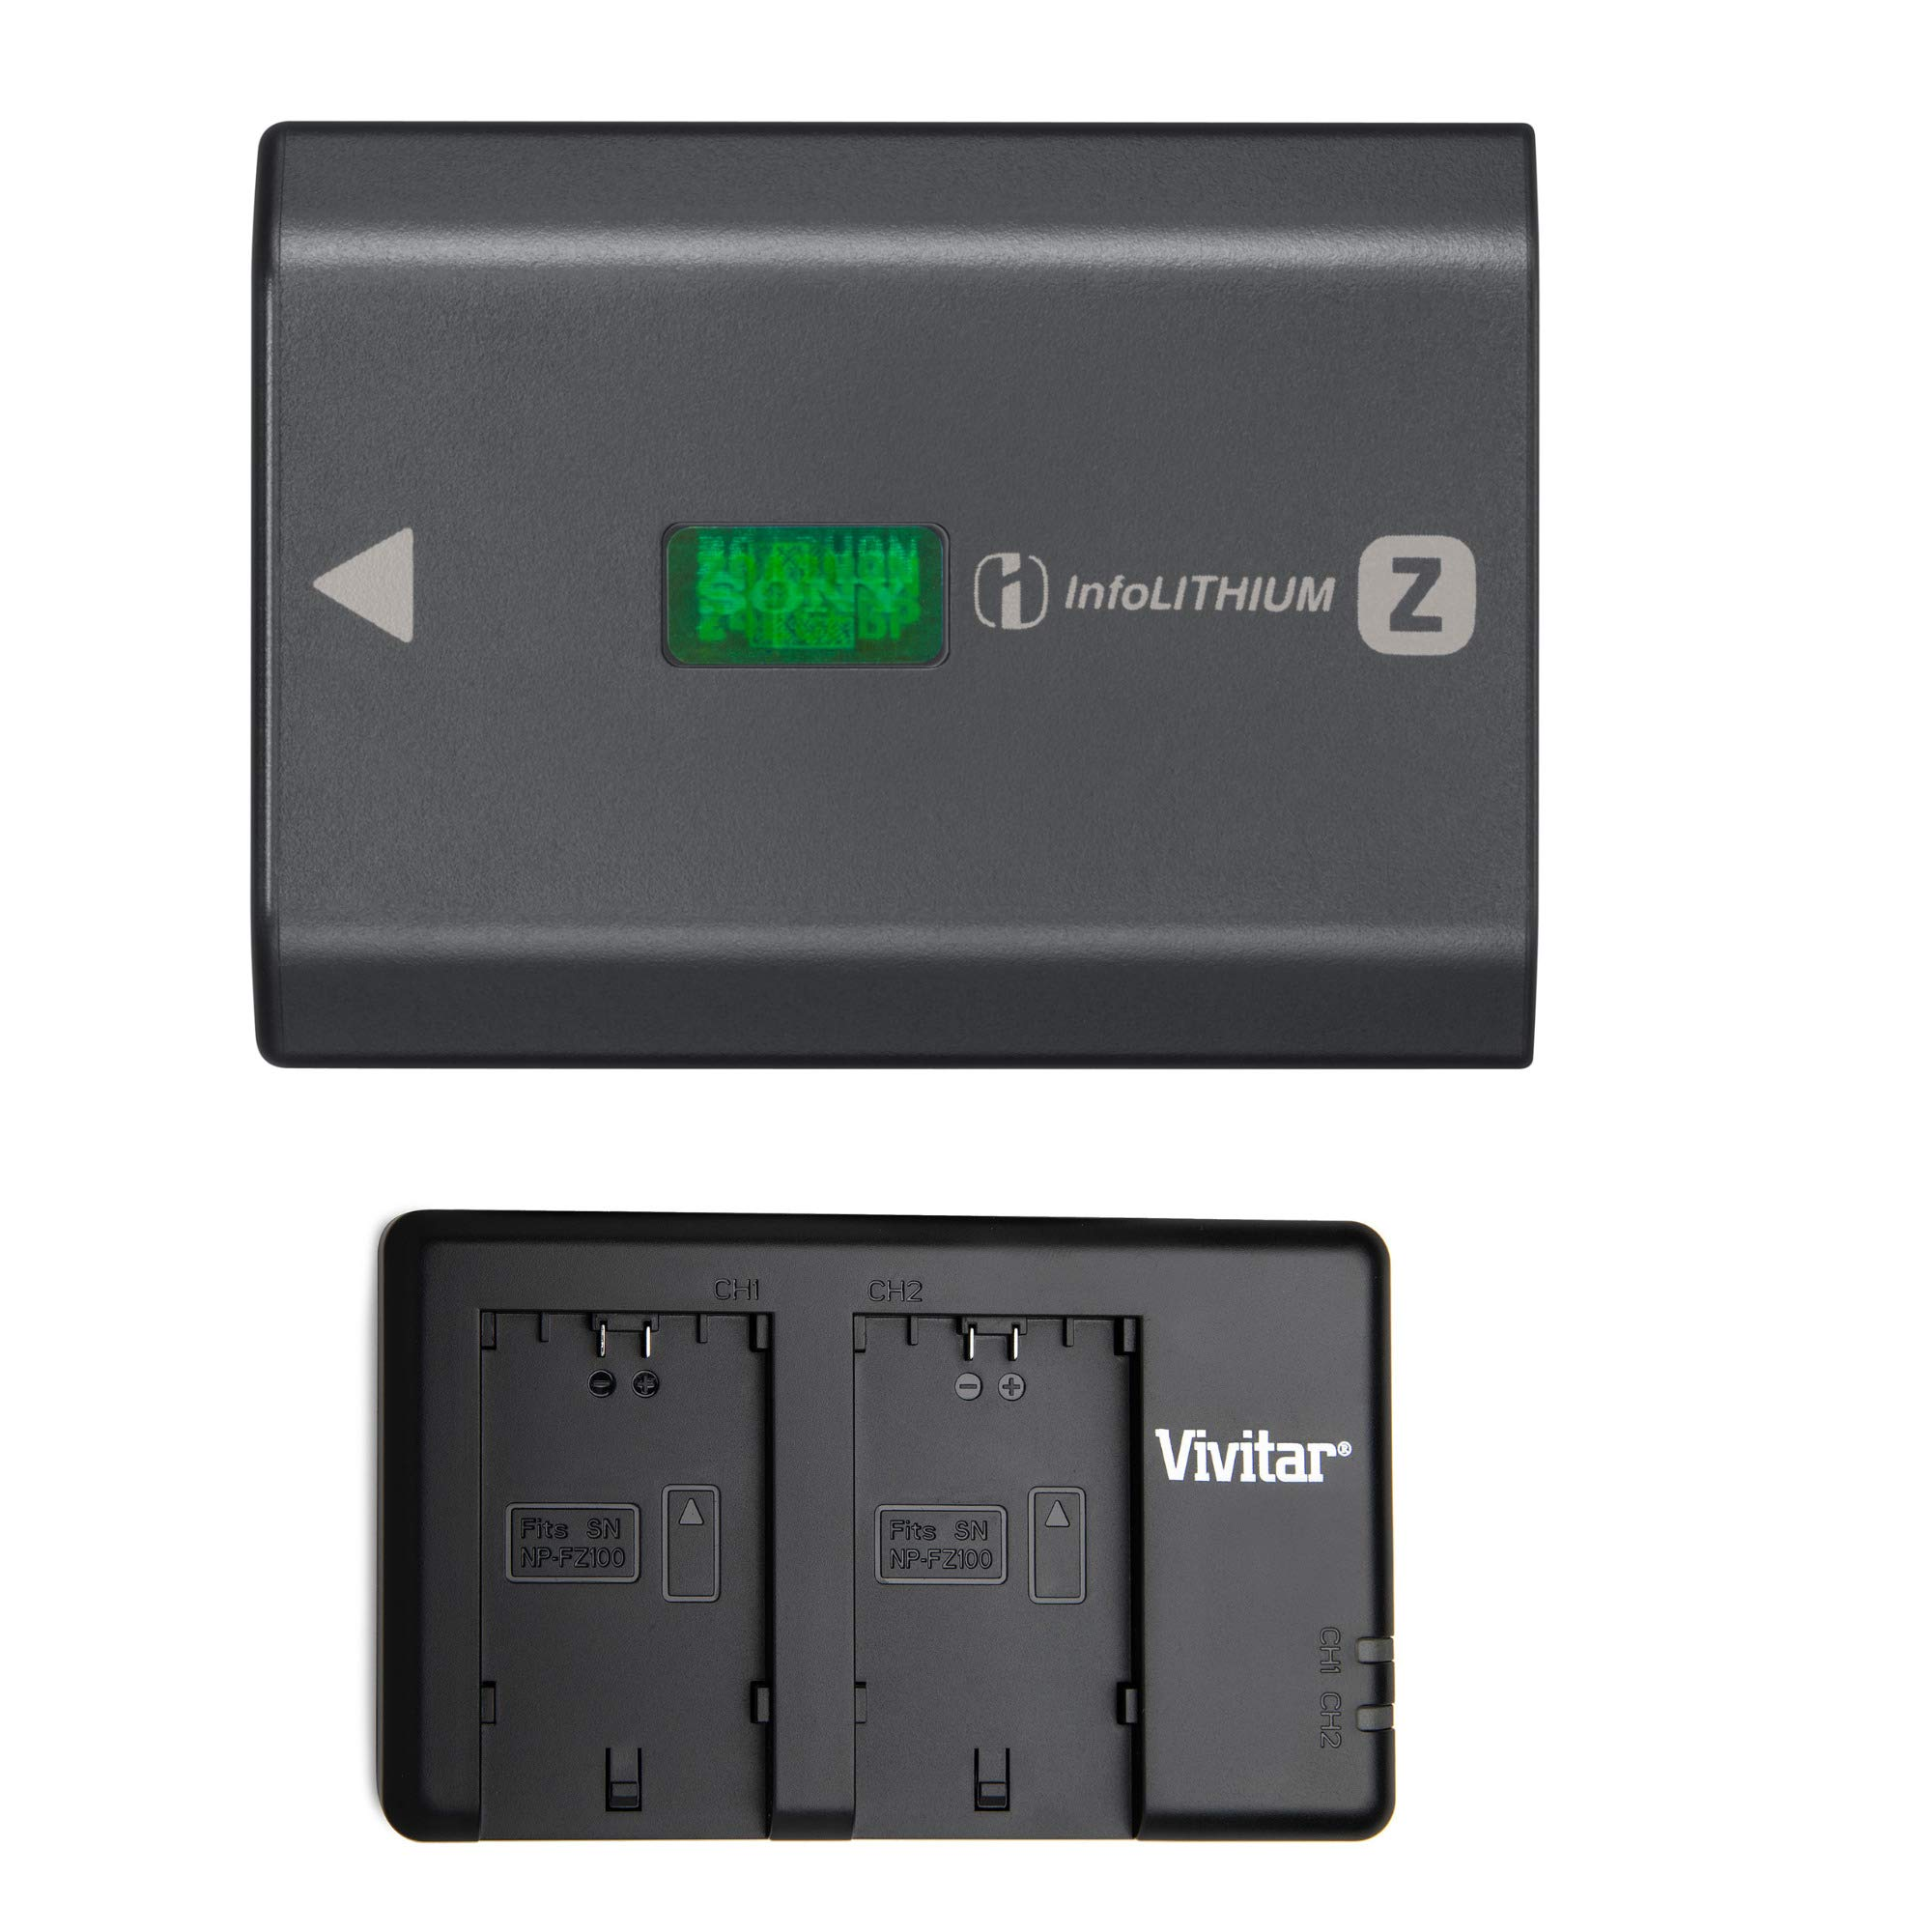 Sony NPFZ100 Z-Series Rechargeable Battery Pack with Vivitar Twin Charger for Sony NP-FZ100 by Focus Camera